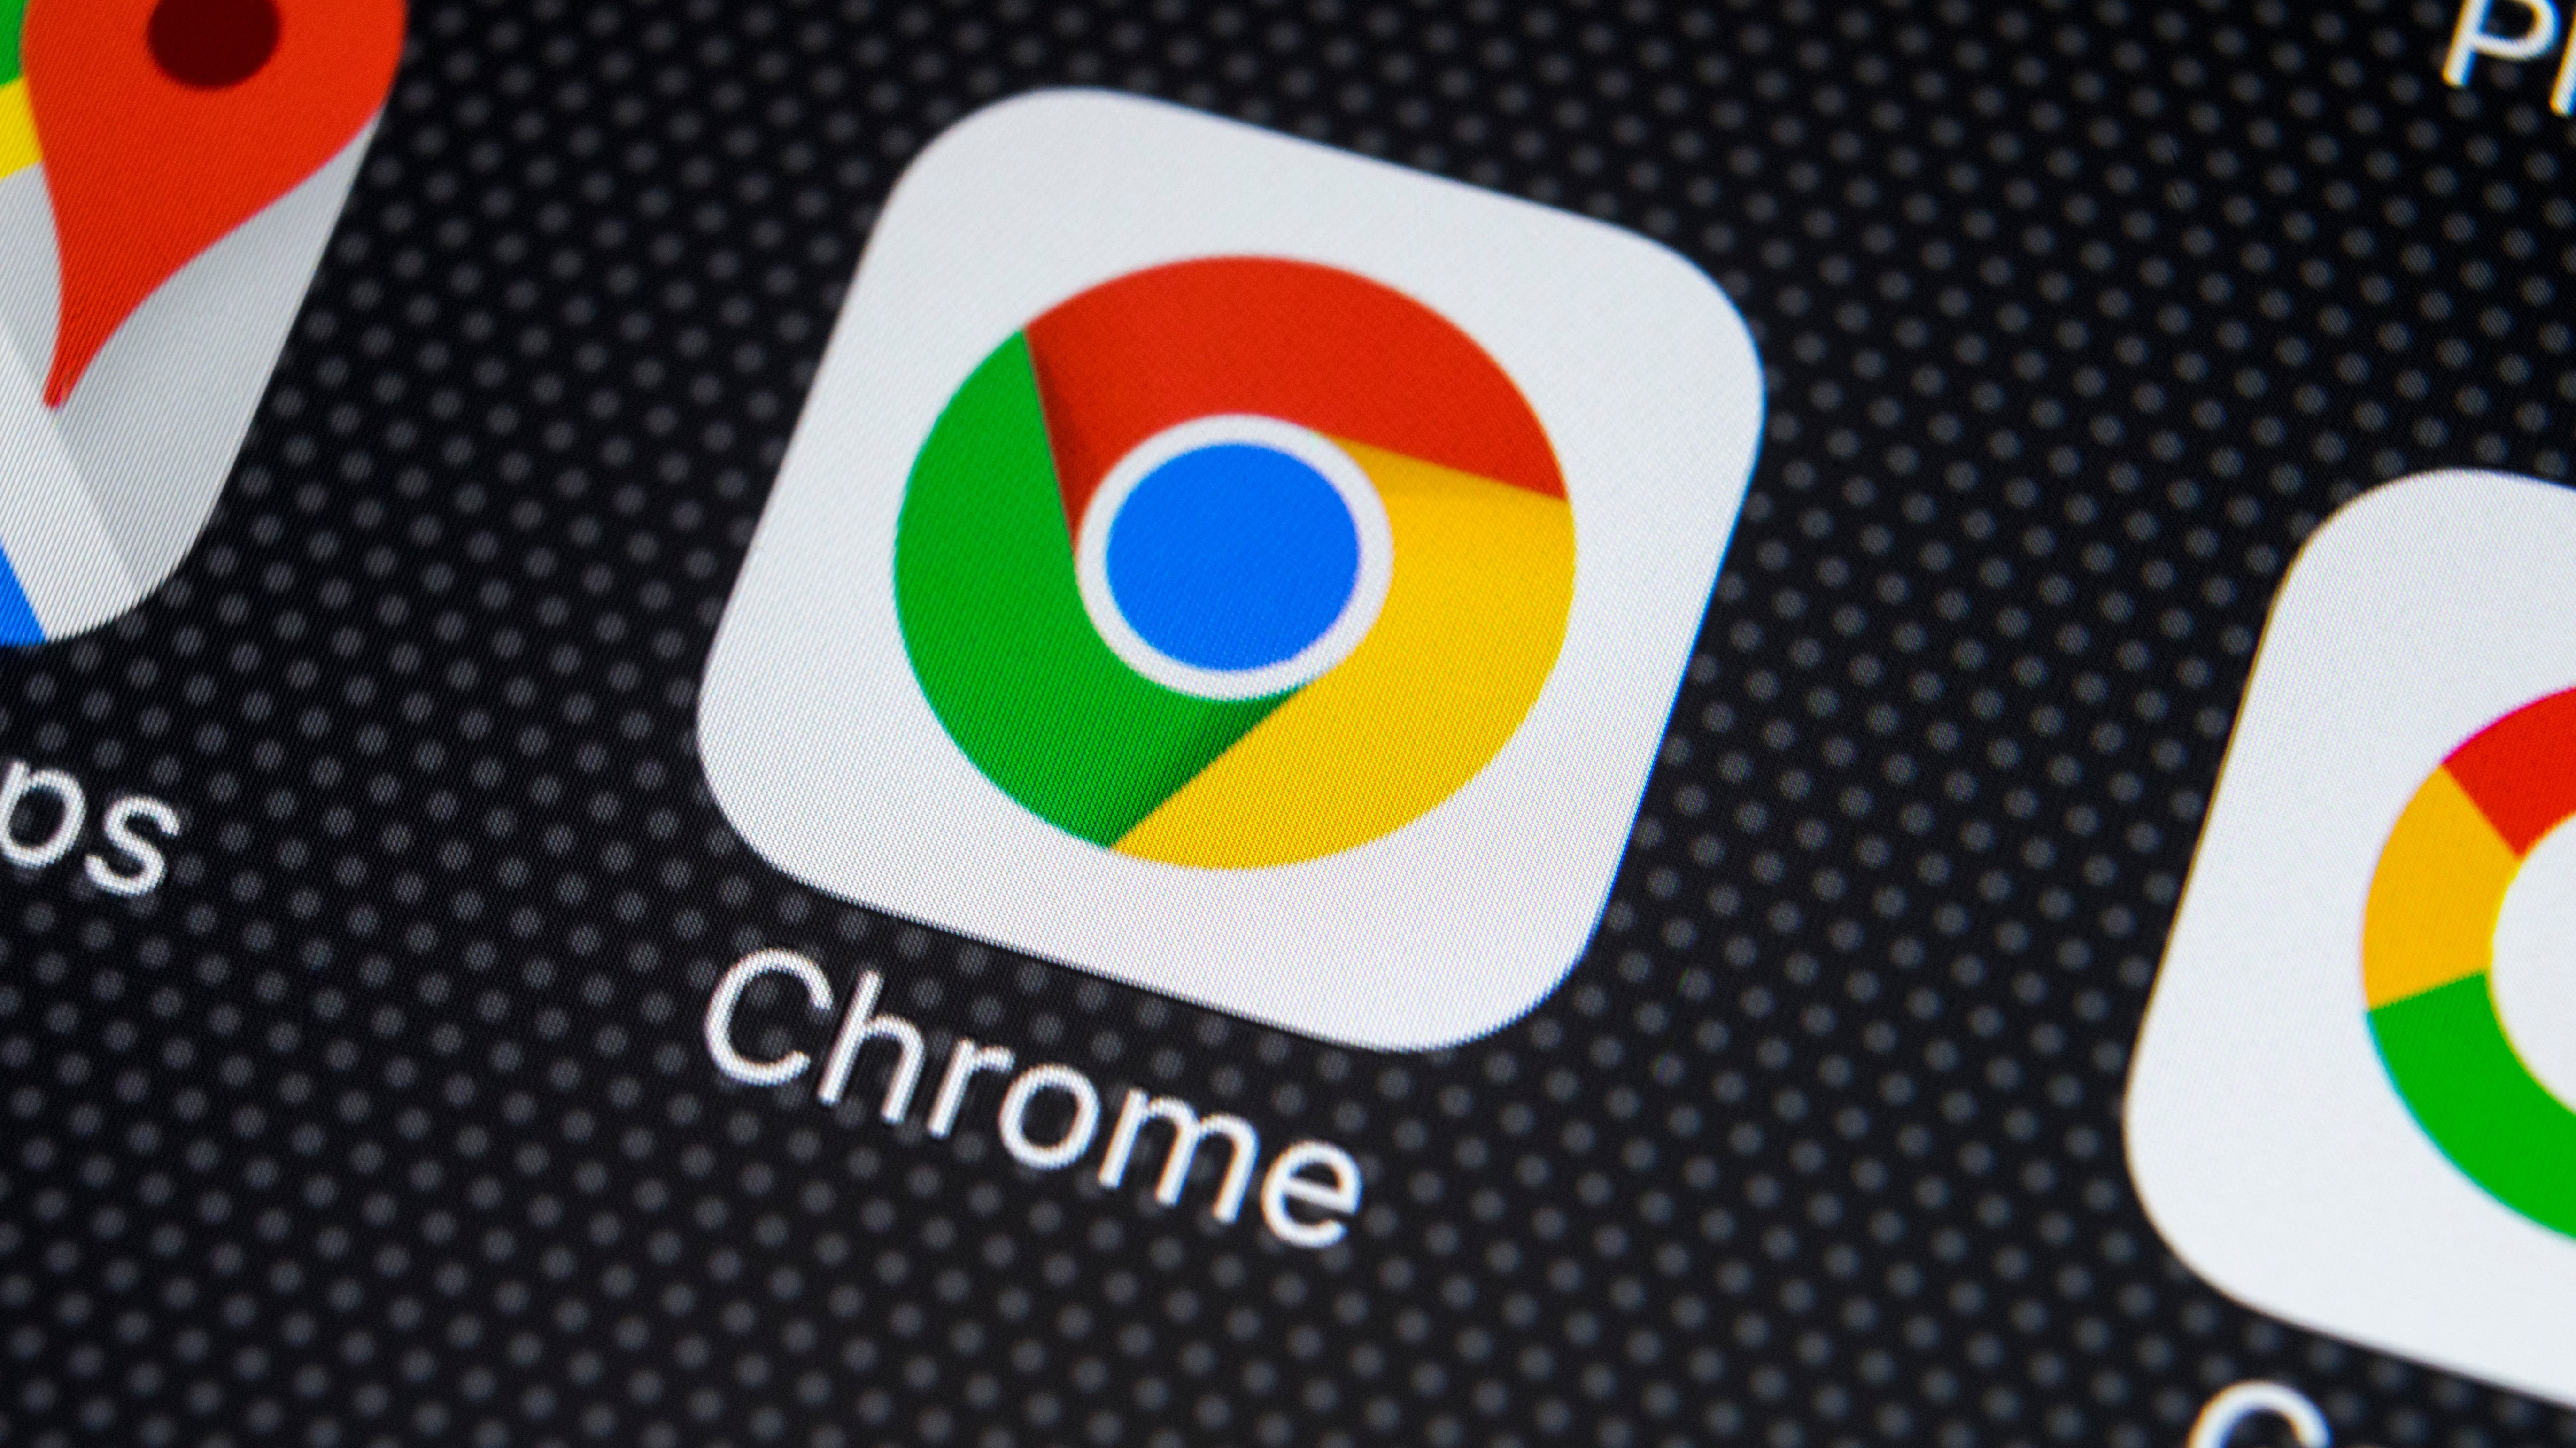 Chrome patches another serious zero-day vulnerability